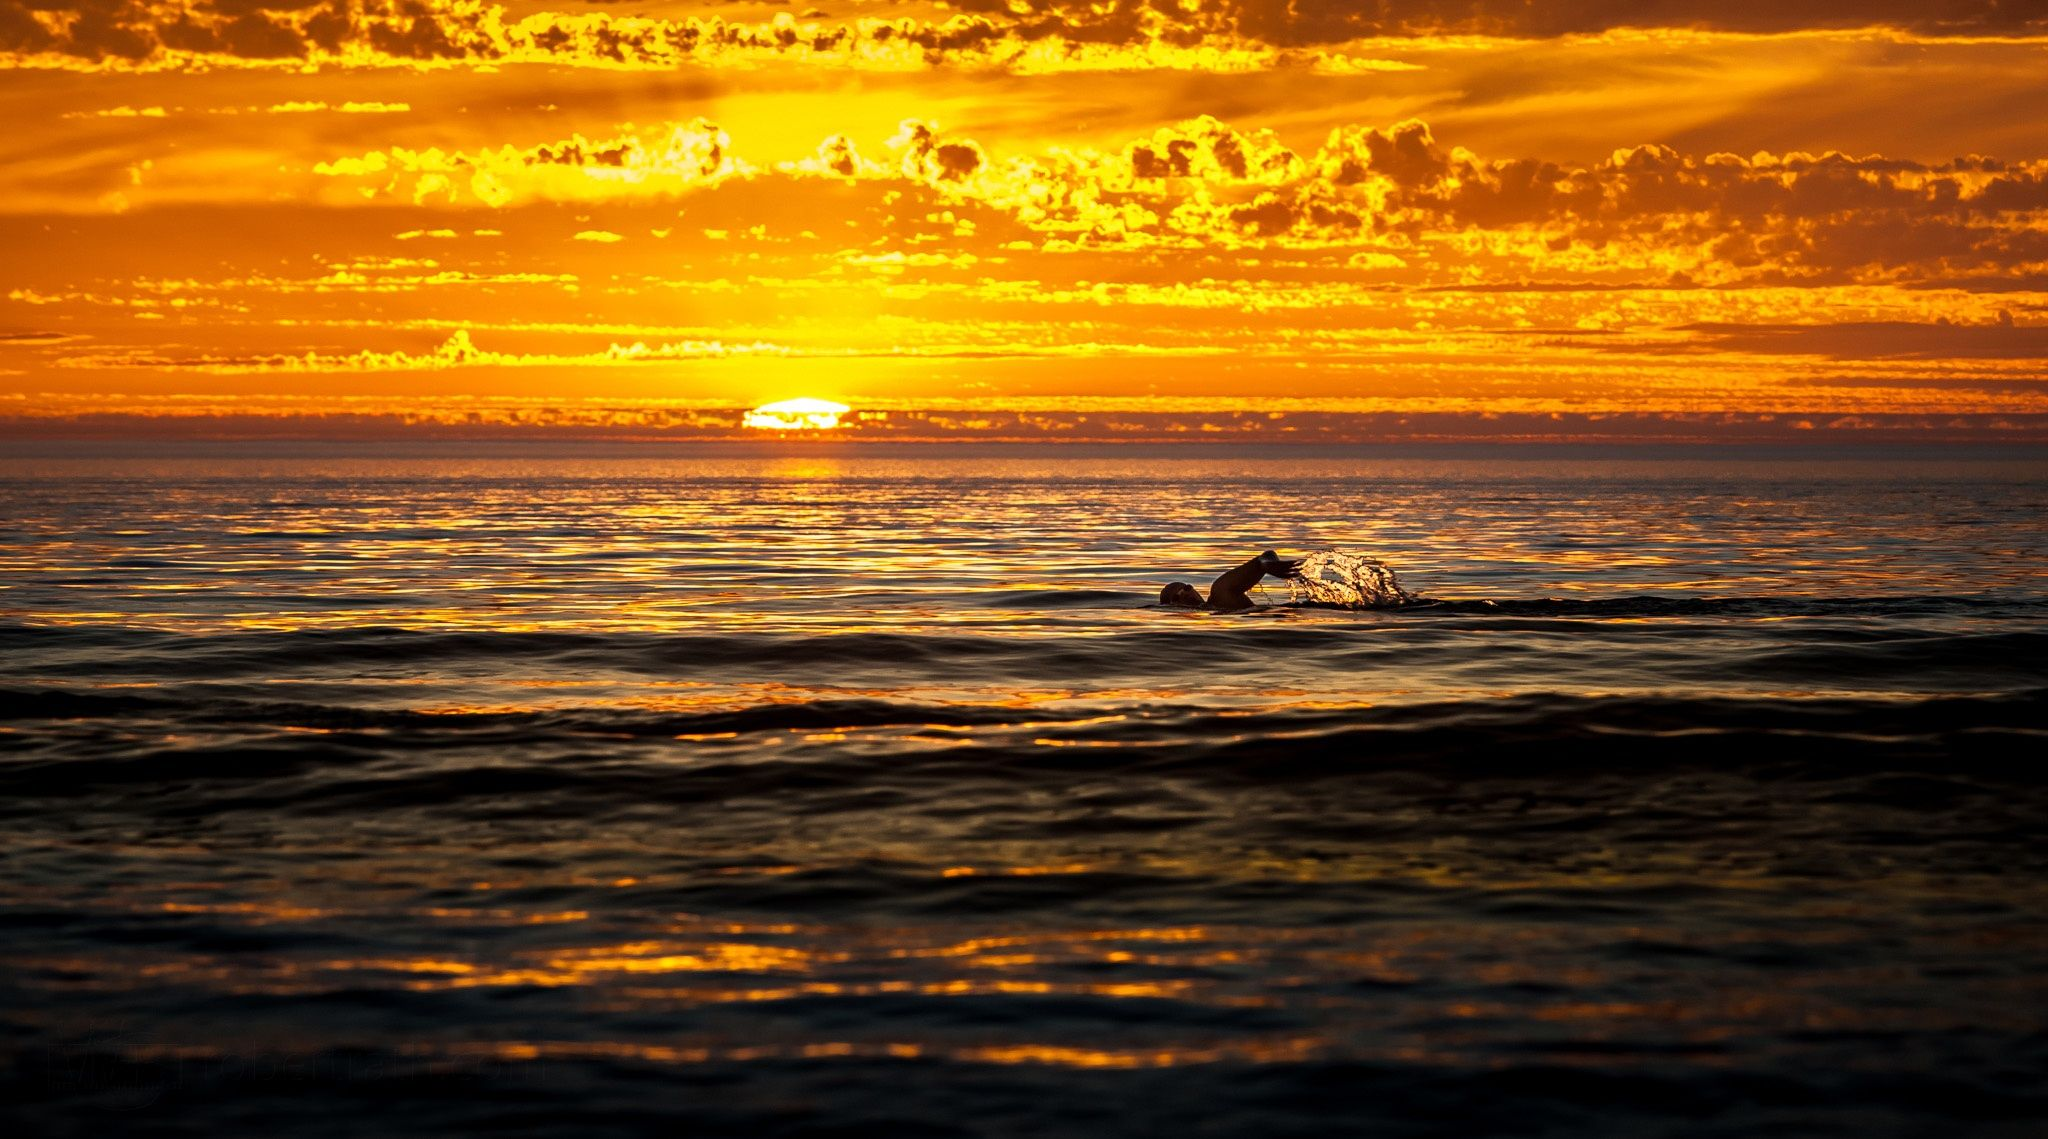 Photograph The Swimmer by Robert Rath on 500px